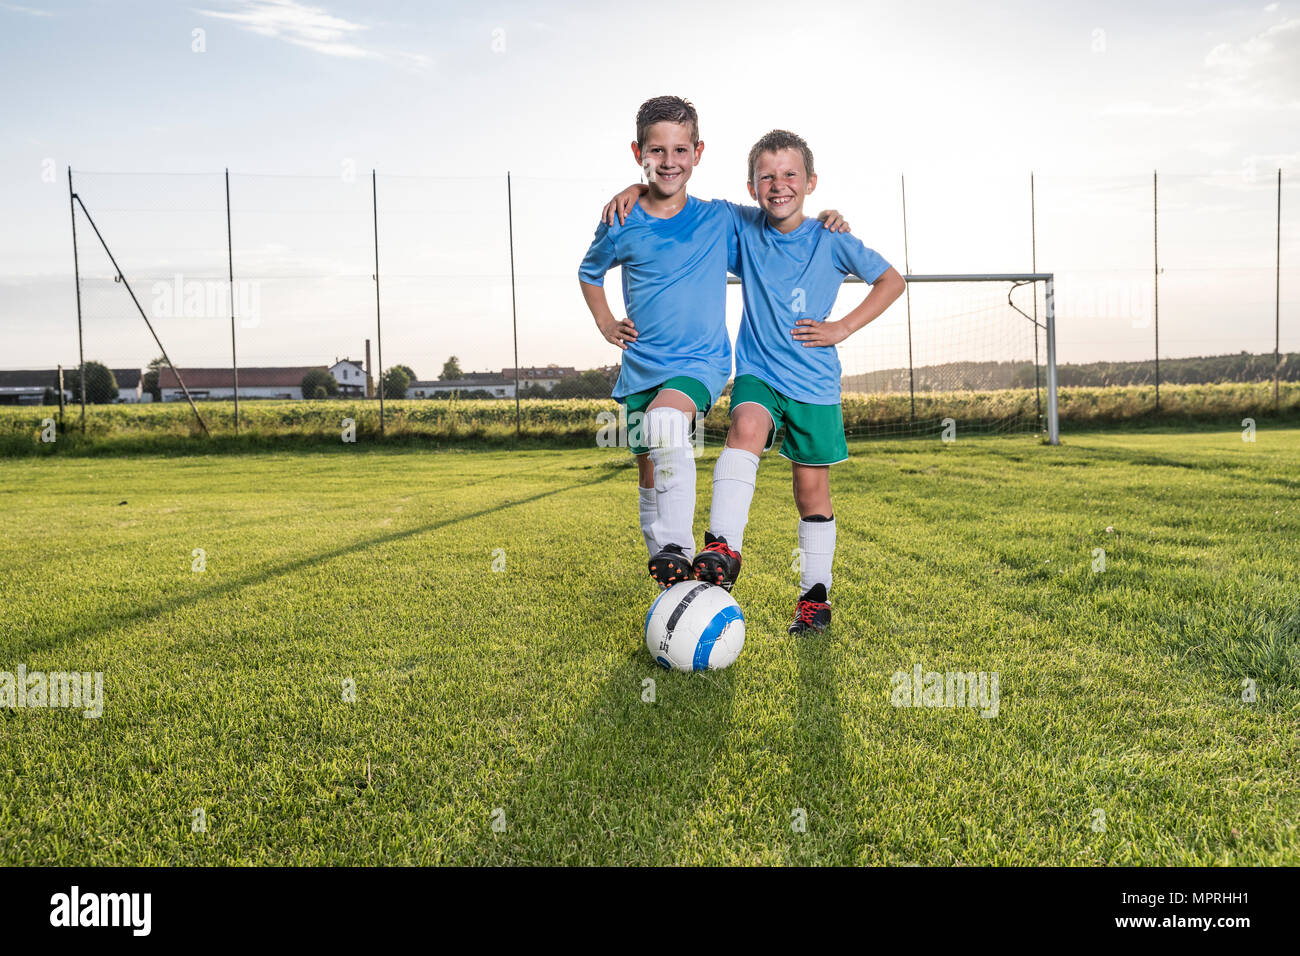 Smiling young football players embracing on football ground - Stock Image